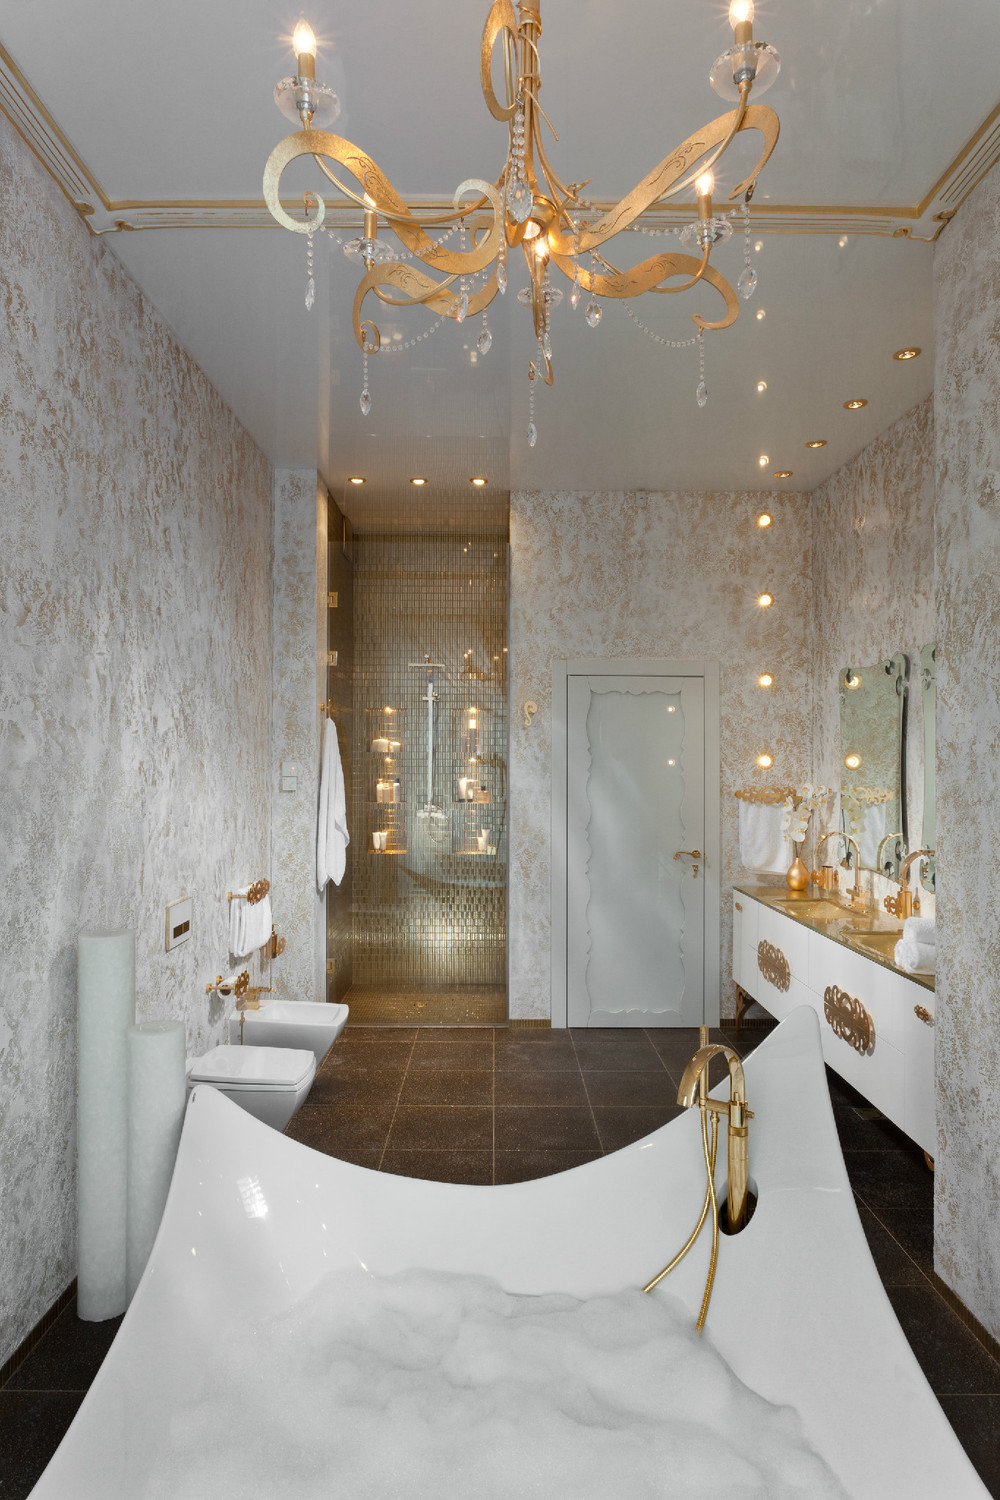 Gold White Bathroom Fixtures Interior Design Ideas - Gold bathroom light fixtures for bathroom decor ideas